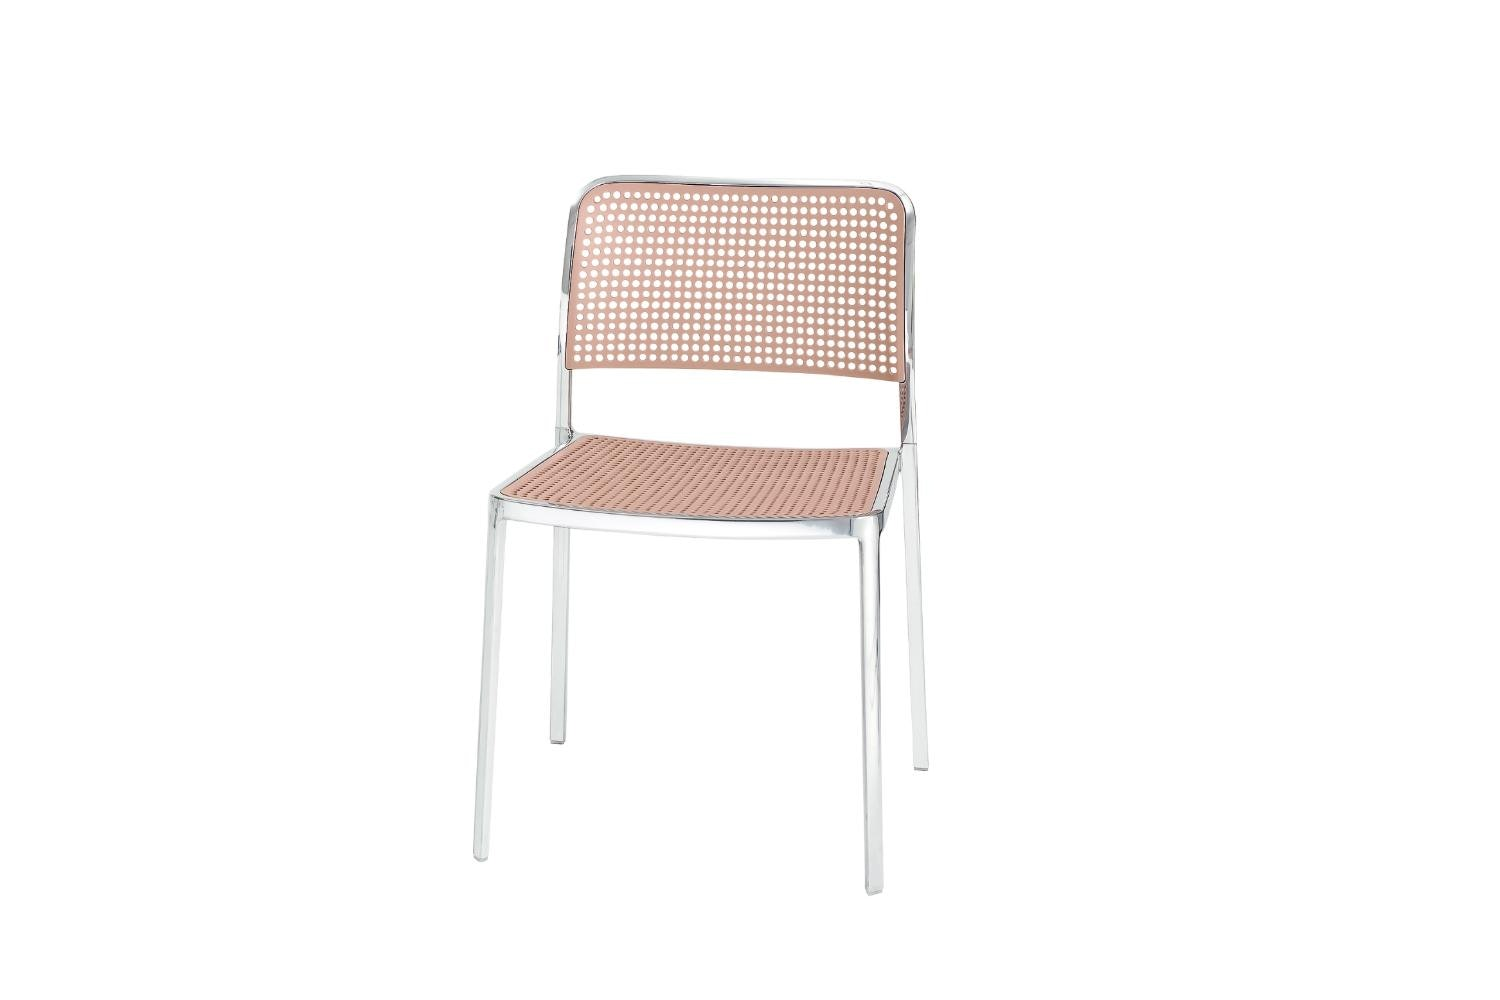 Audrey Shiny Chair by Piero Lissoni for Kartell